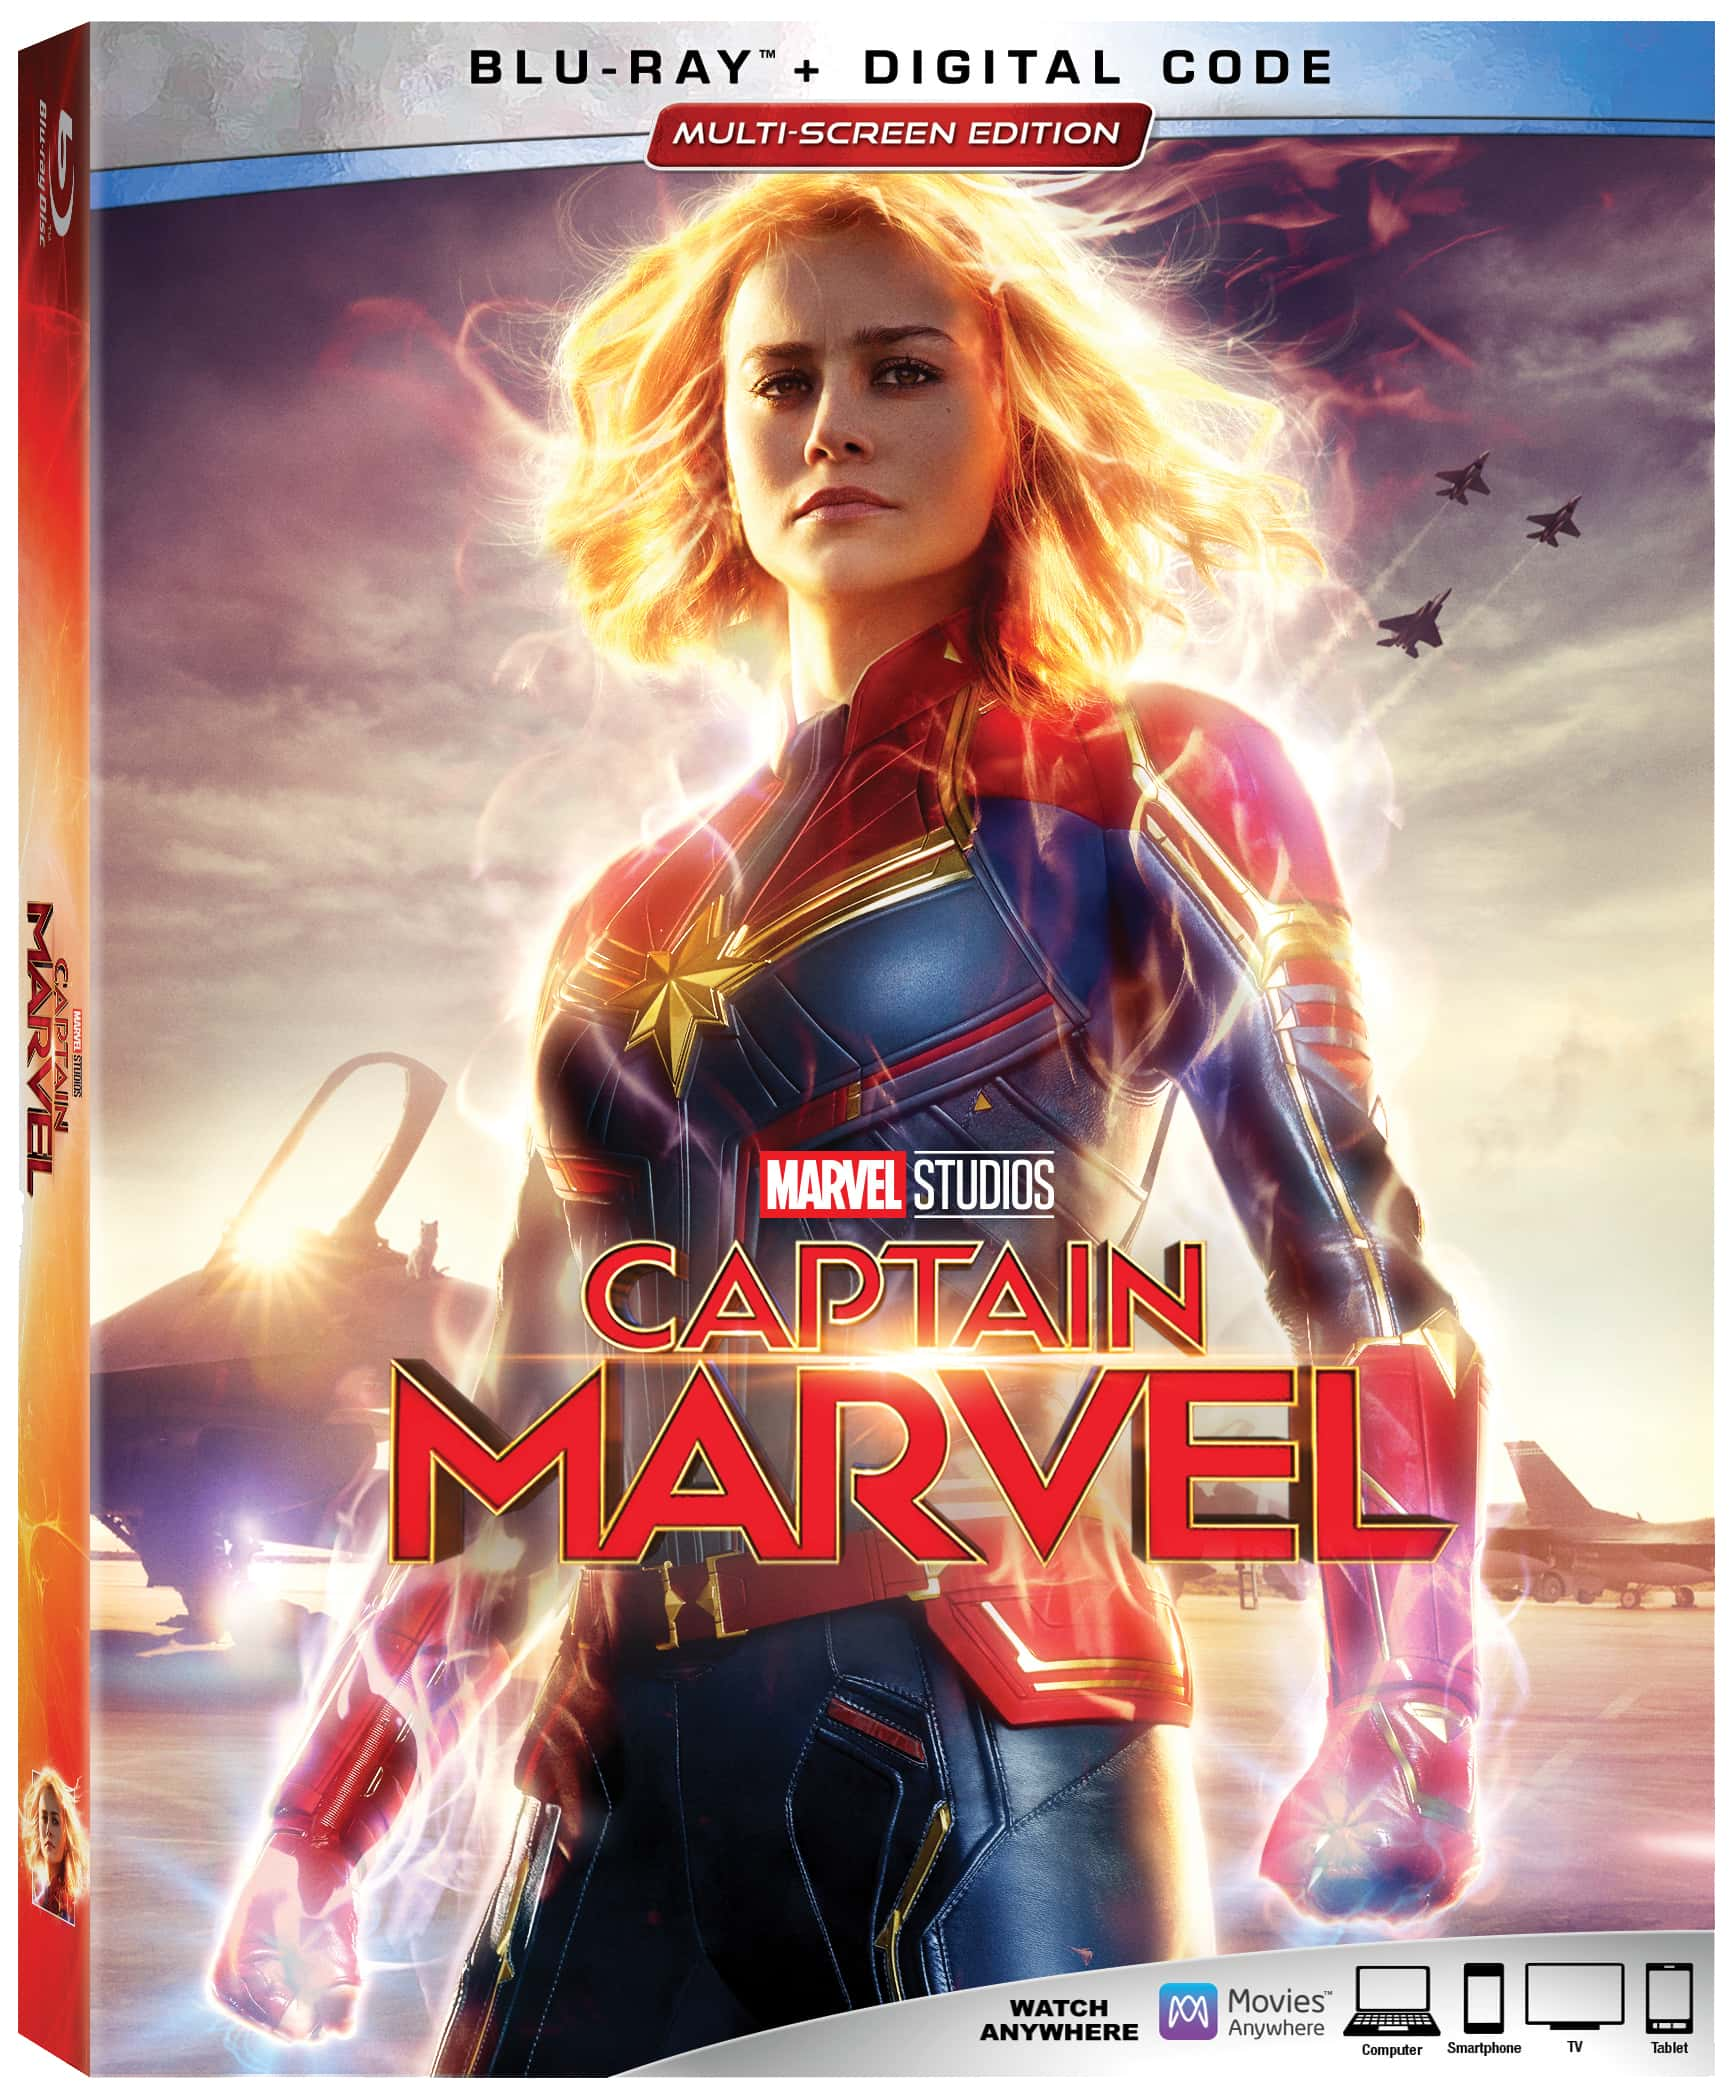 Captain Marvel Blu-ray Bonus Features